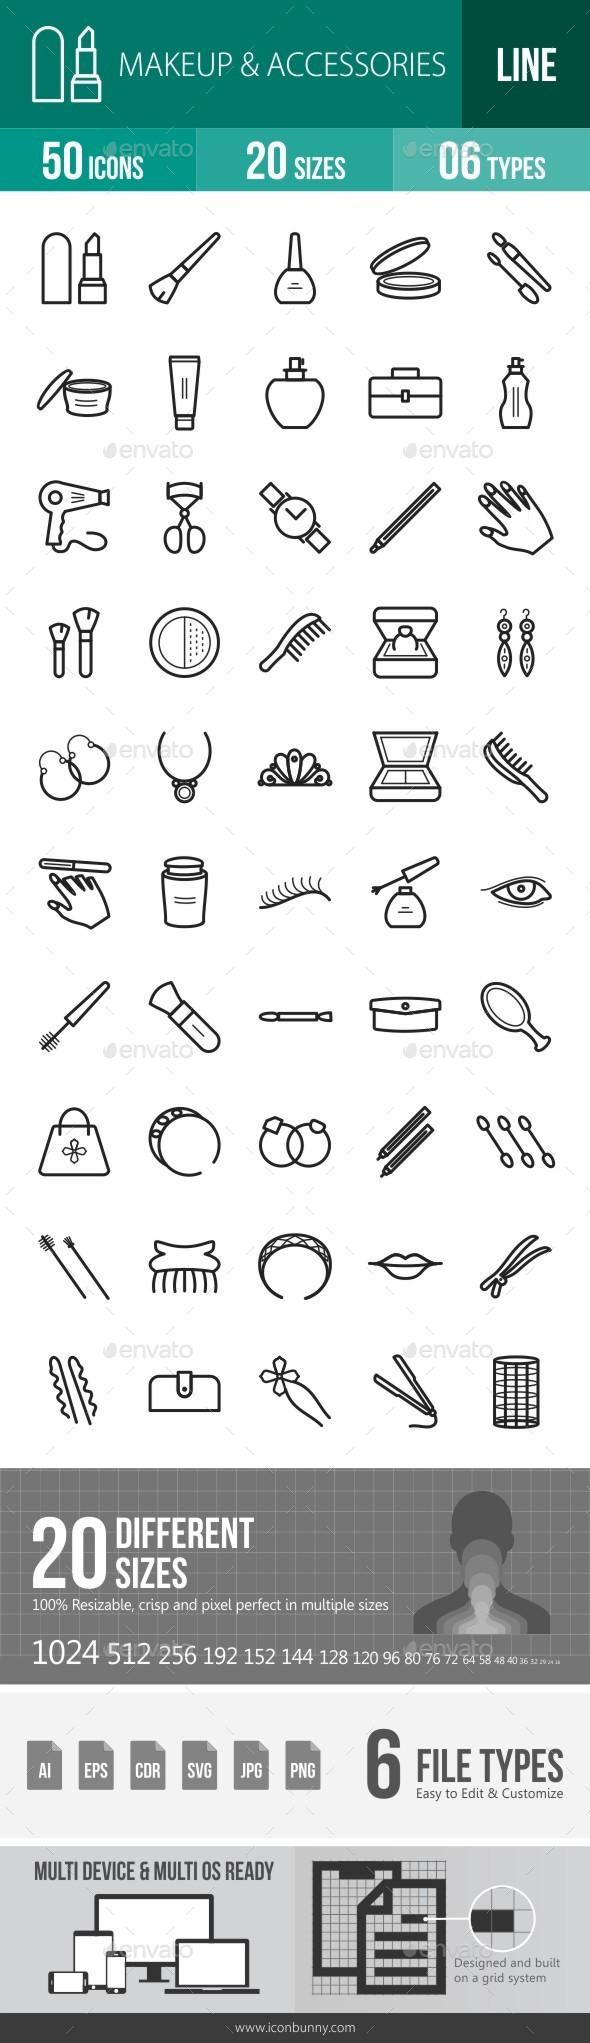 Makeup & Accessories Line Icons - Icons